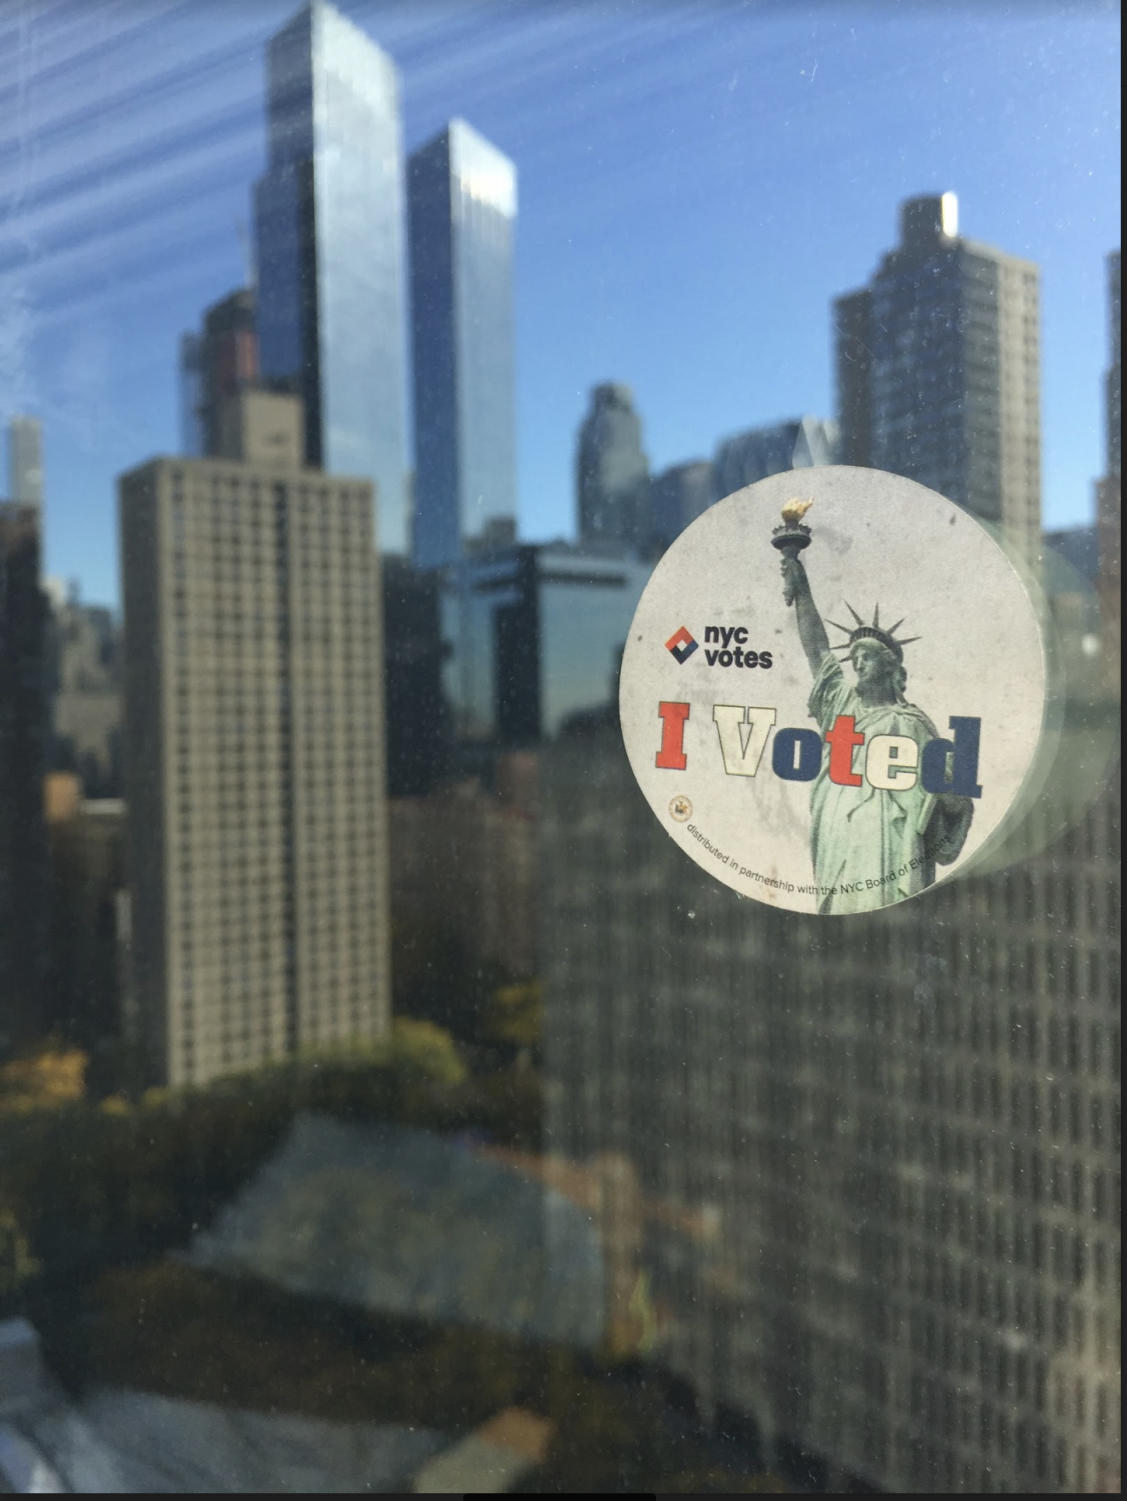 For the first time, Fordham administration encourages students to vote.